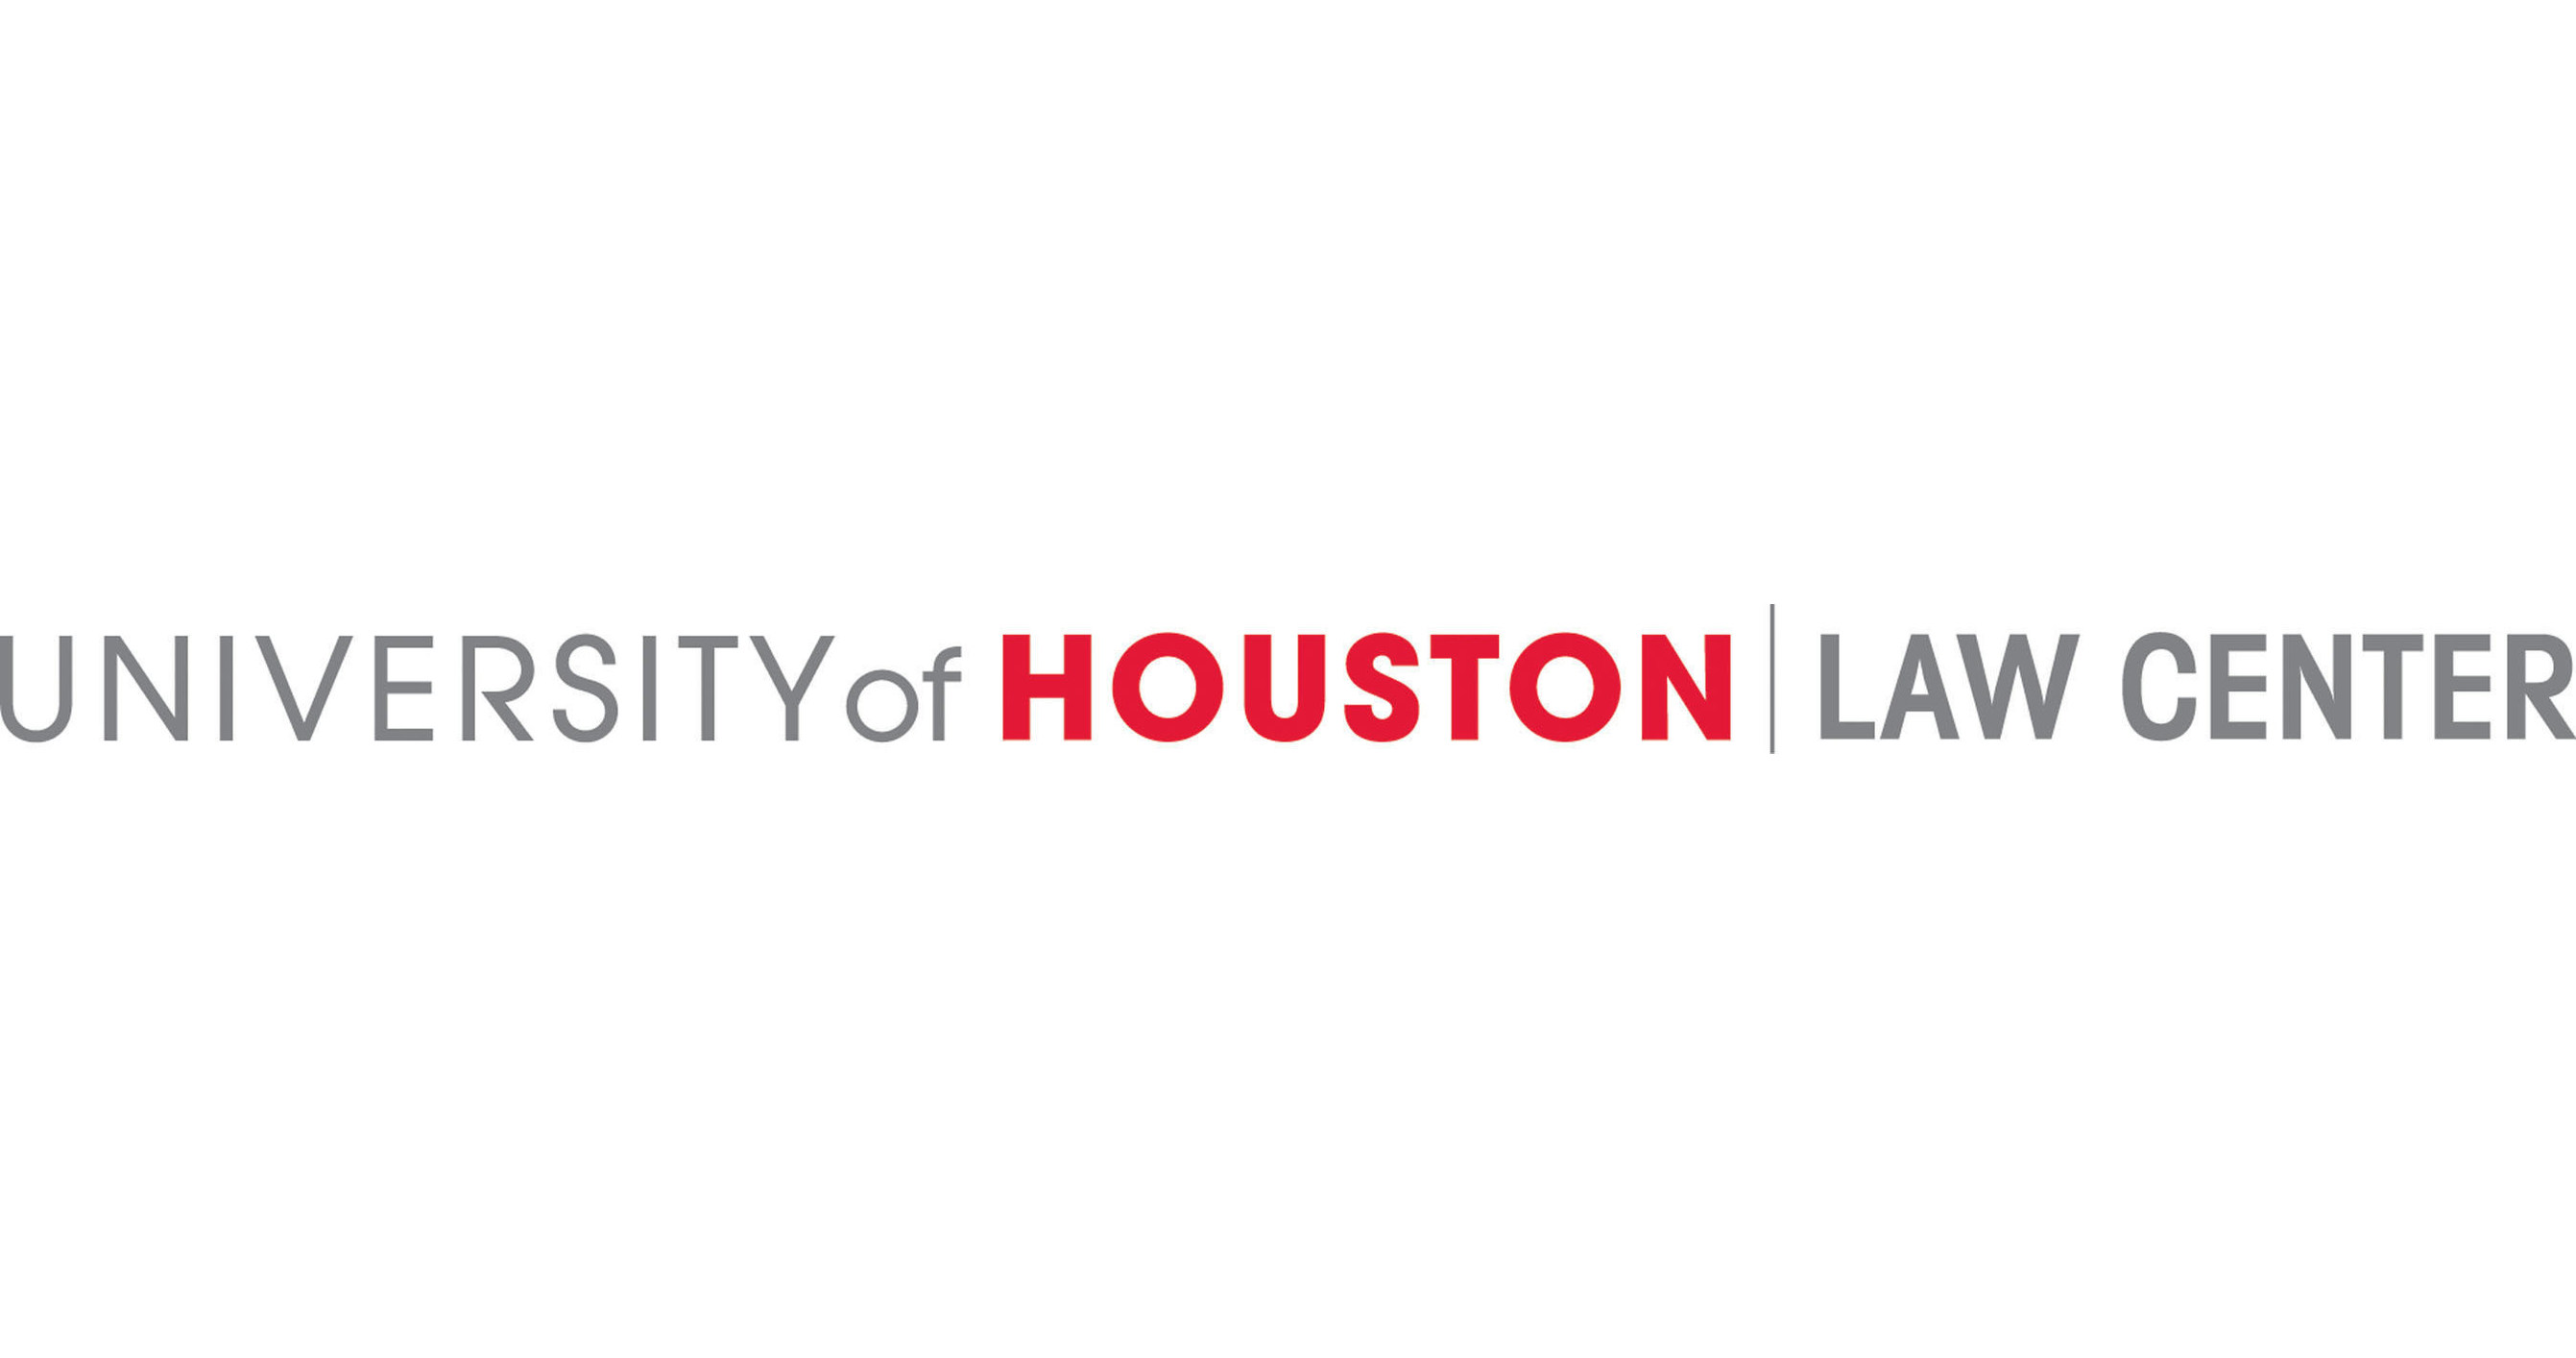 University of houston professor dating policy